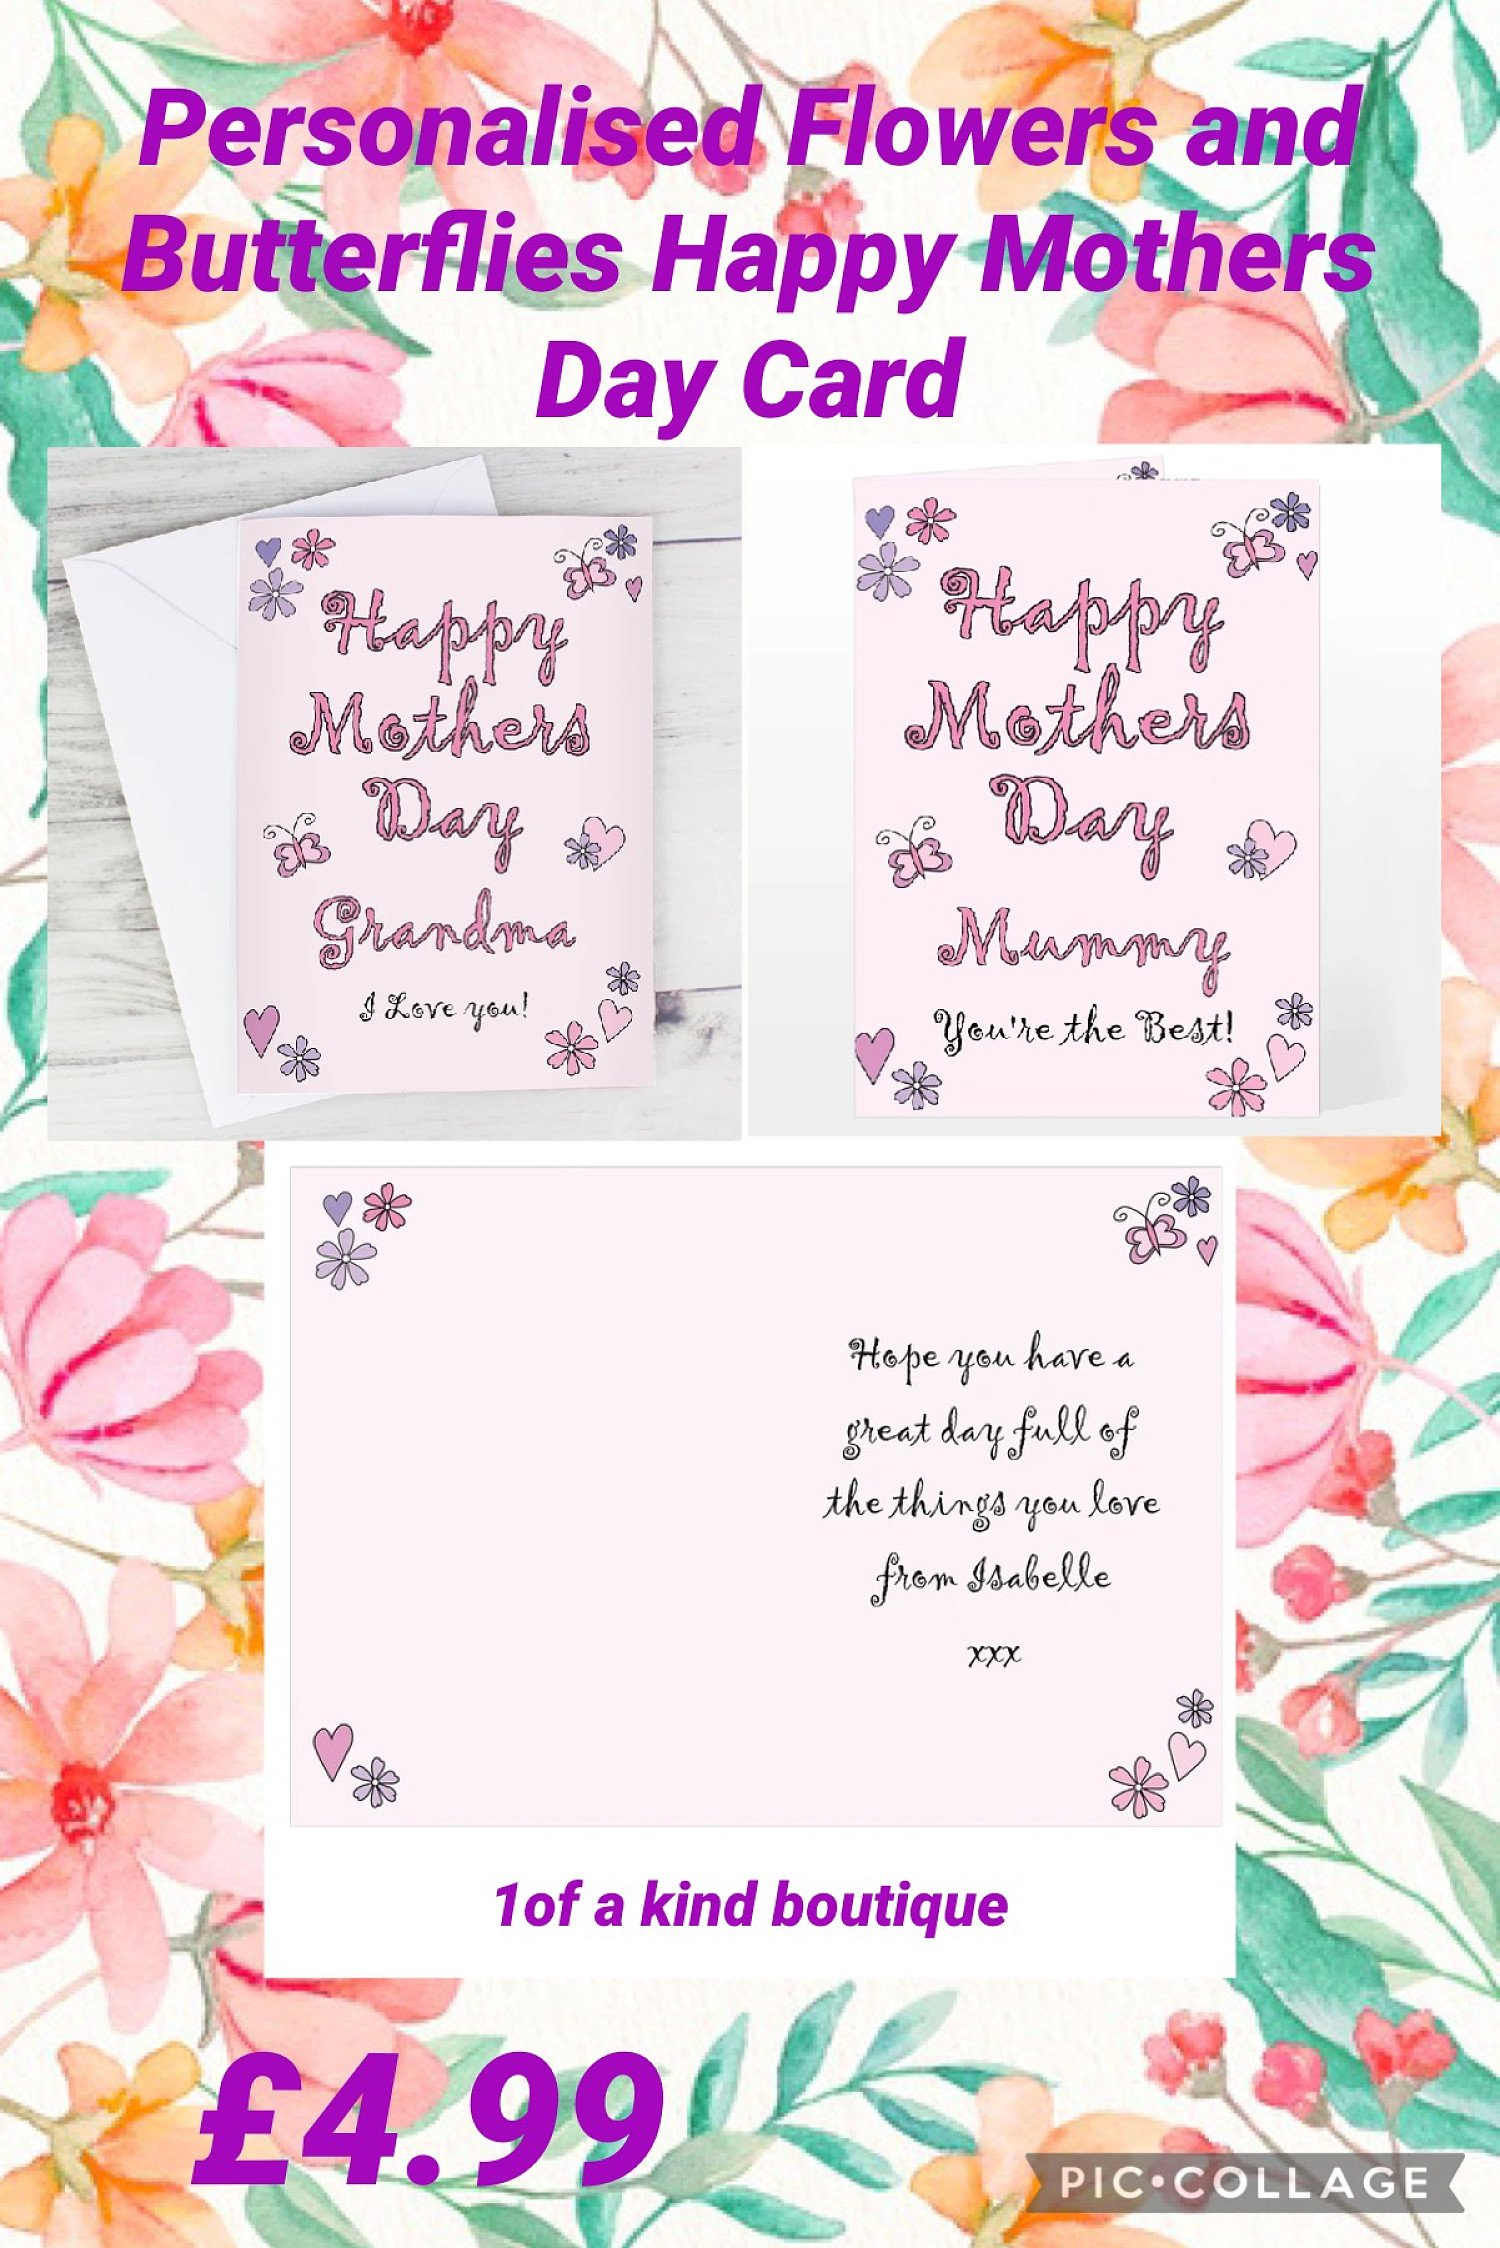 Personalised Flowers and Butterflies Happy Mothers Day Card Free Postage